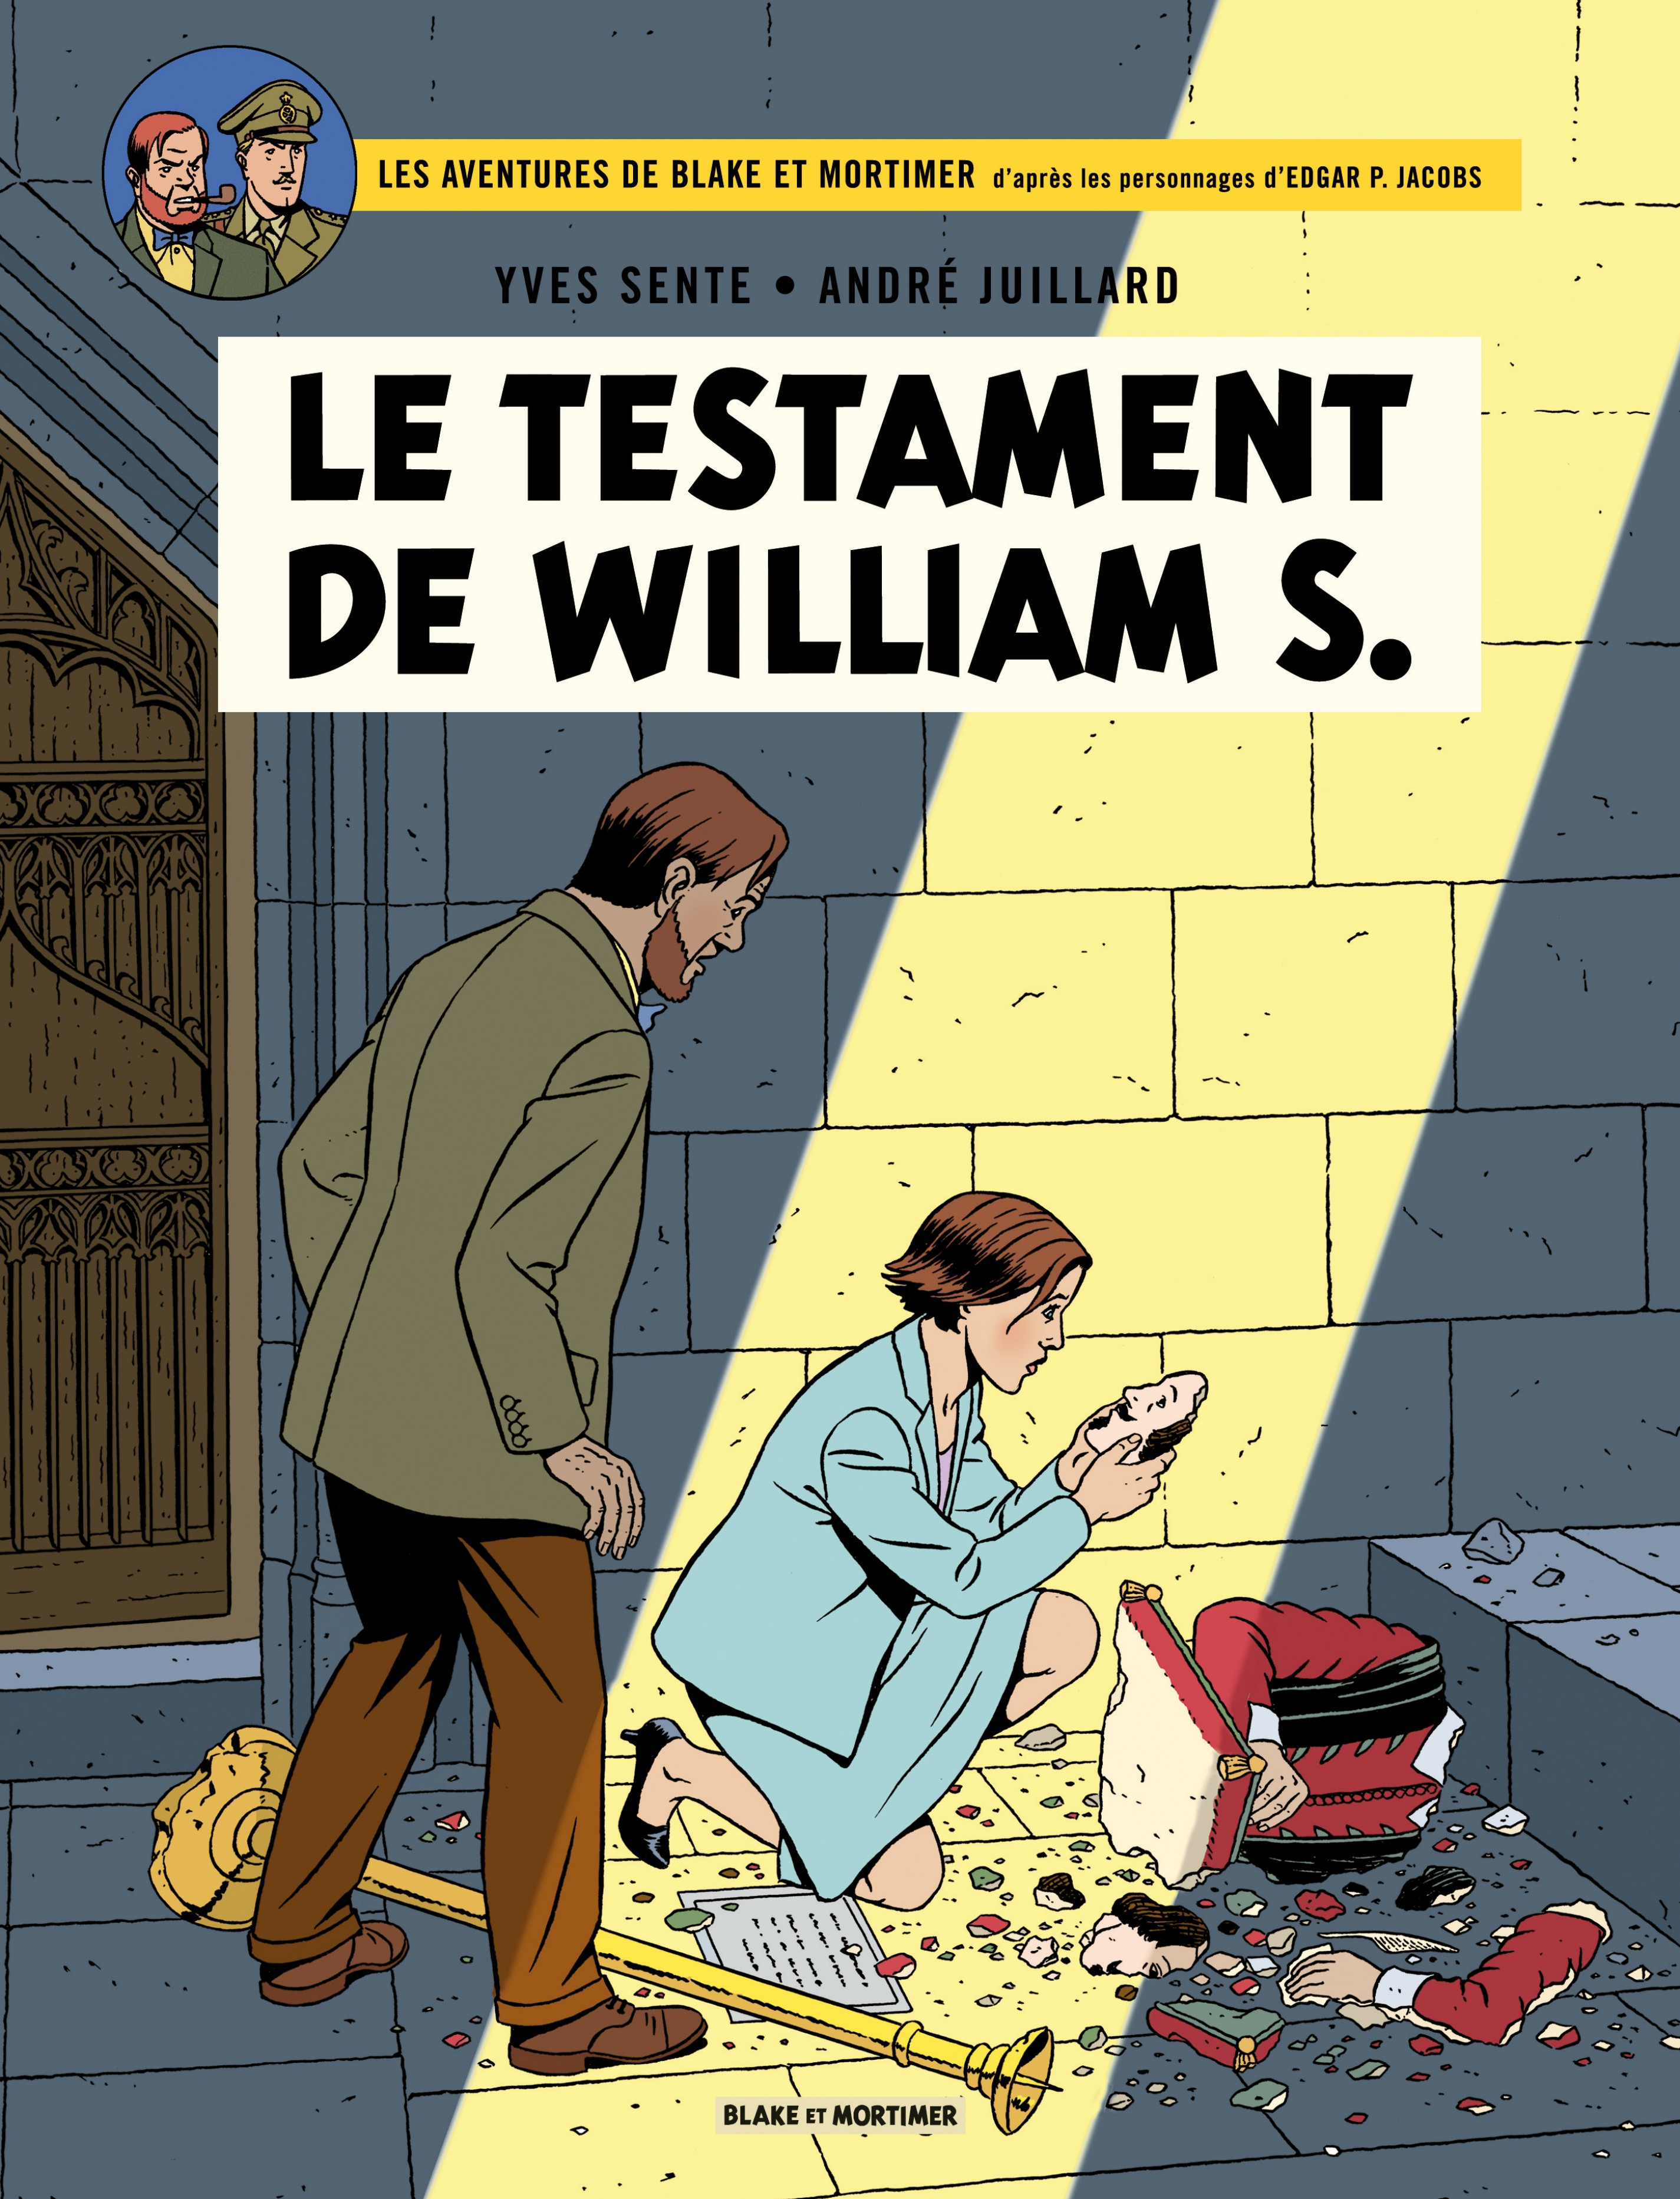 Blake et Mortimer T.24 : Le testament de William S. - Yves Sente, André Juillard